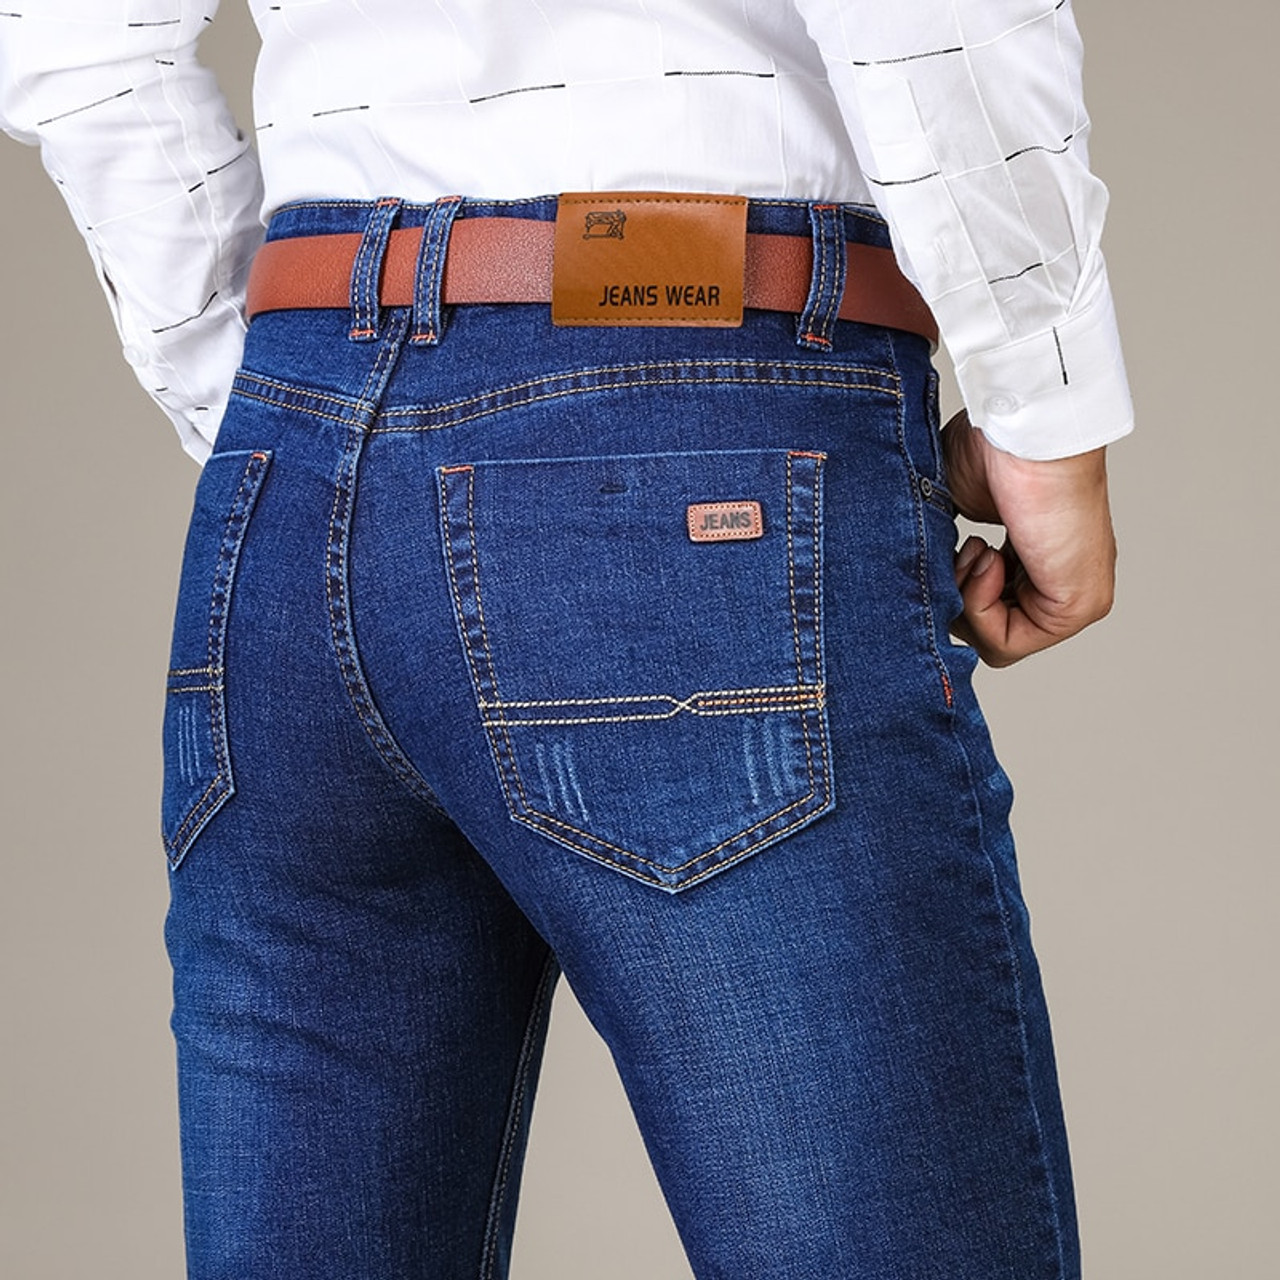 baf172783311 ... Brother Wang Brand 2018 New Men s Fashion Jeans Business Casual Stretch Slim  Jeans Classic Trousers Denim ...